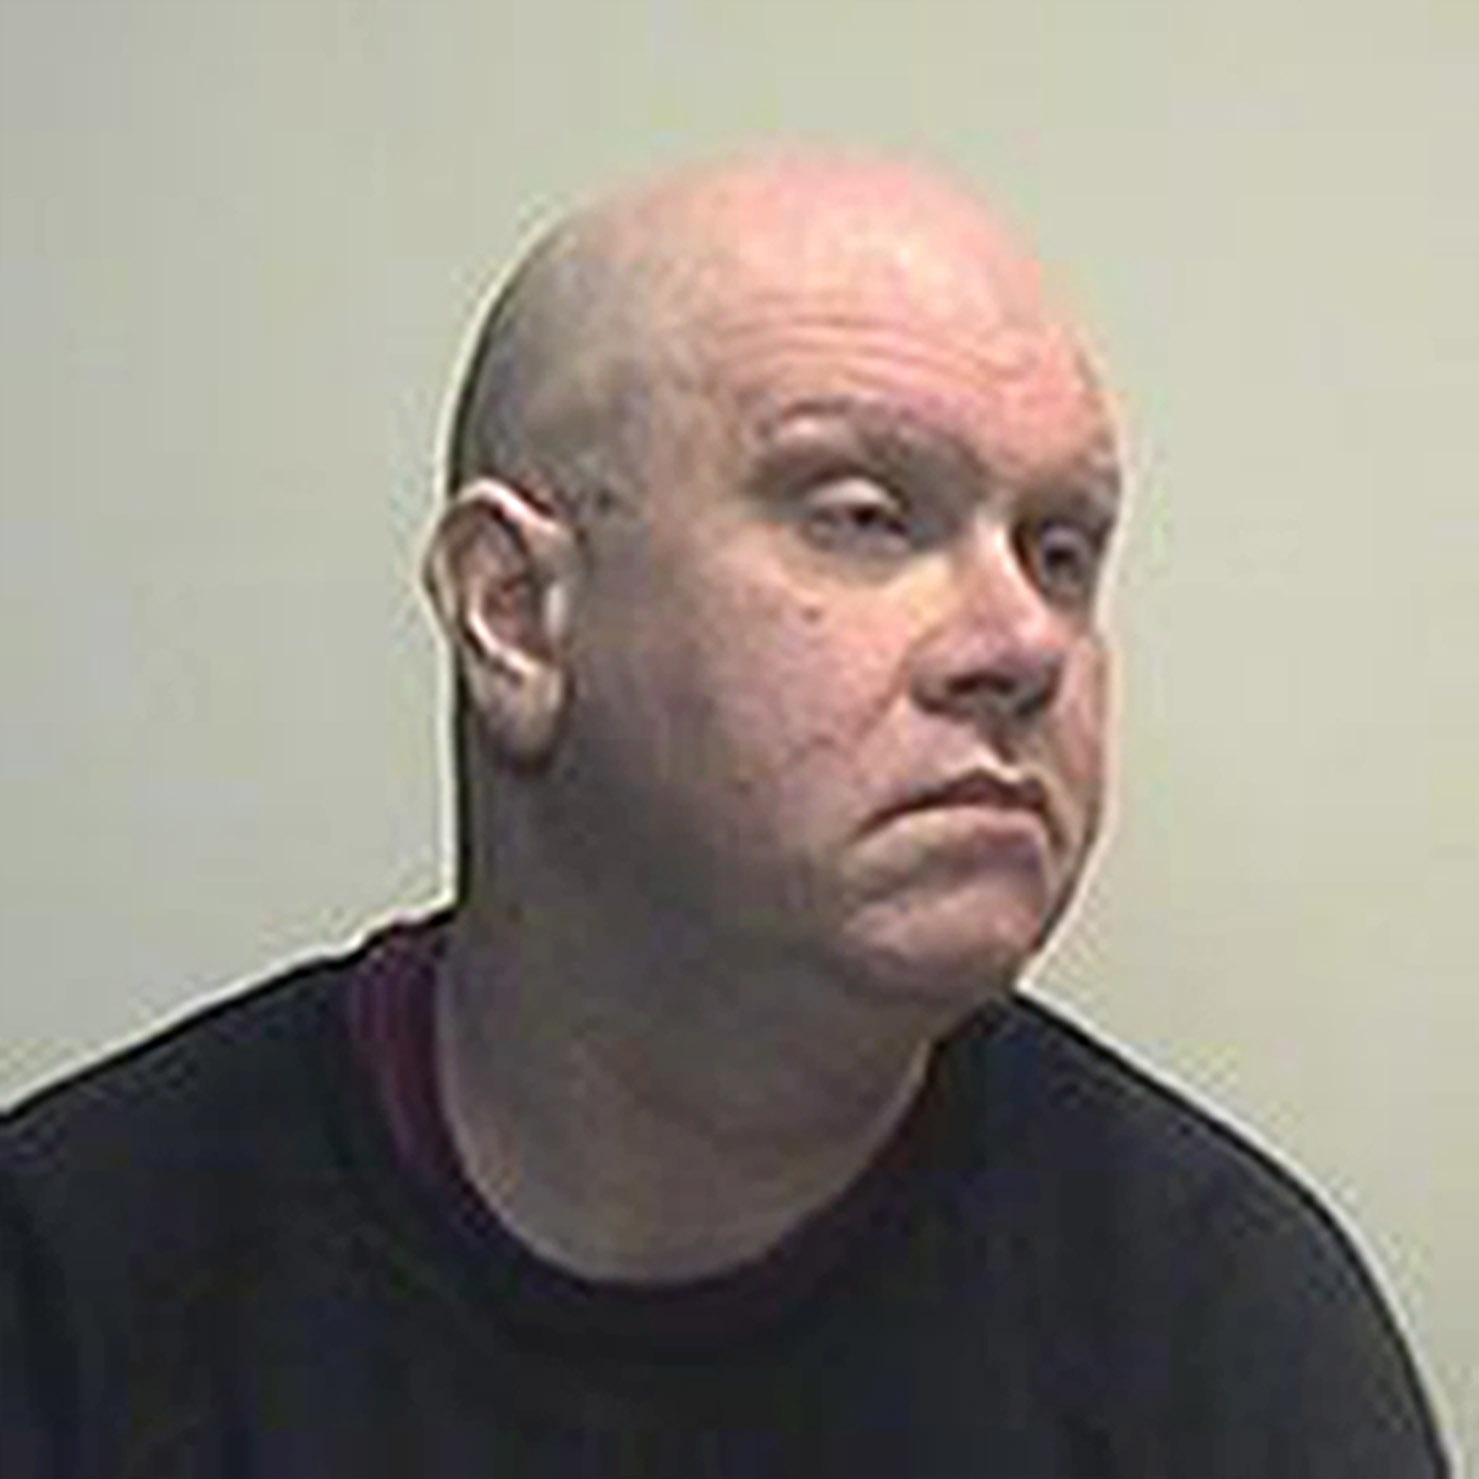 David Penman has been jailed for carrying out a series of rapes and serious sexual assaults.